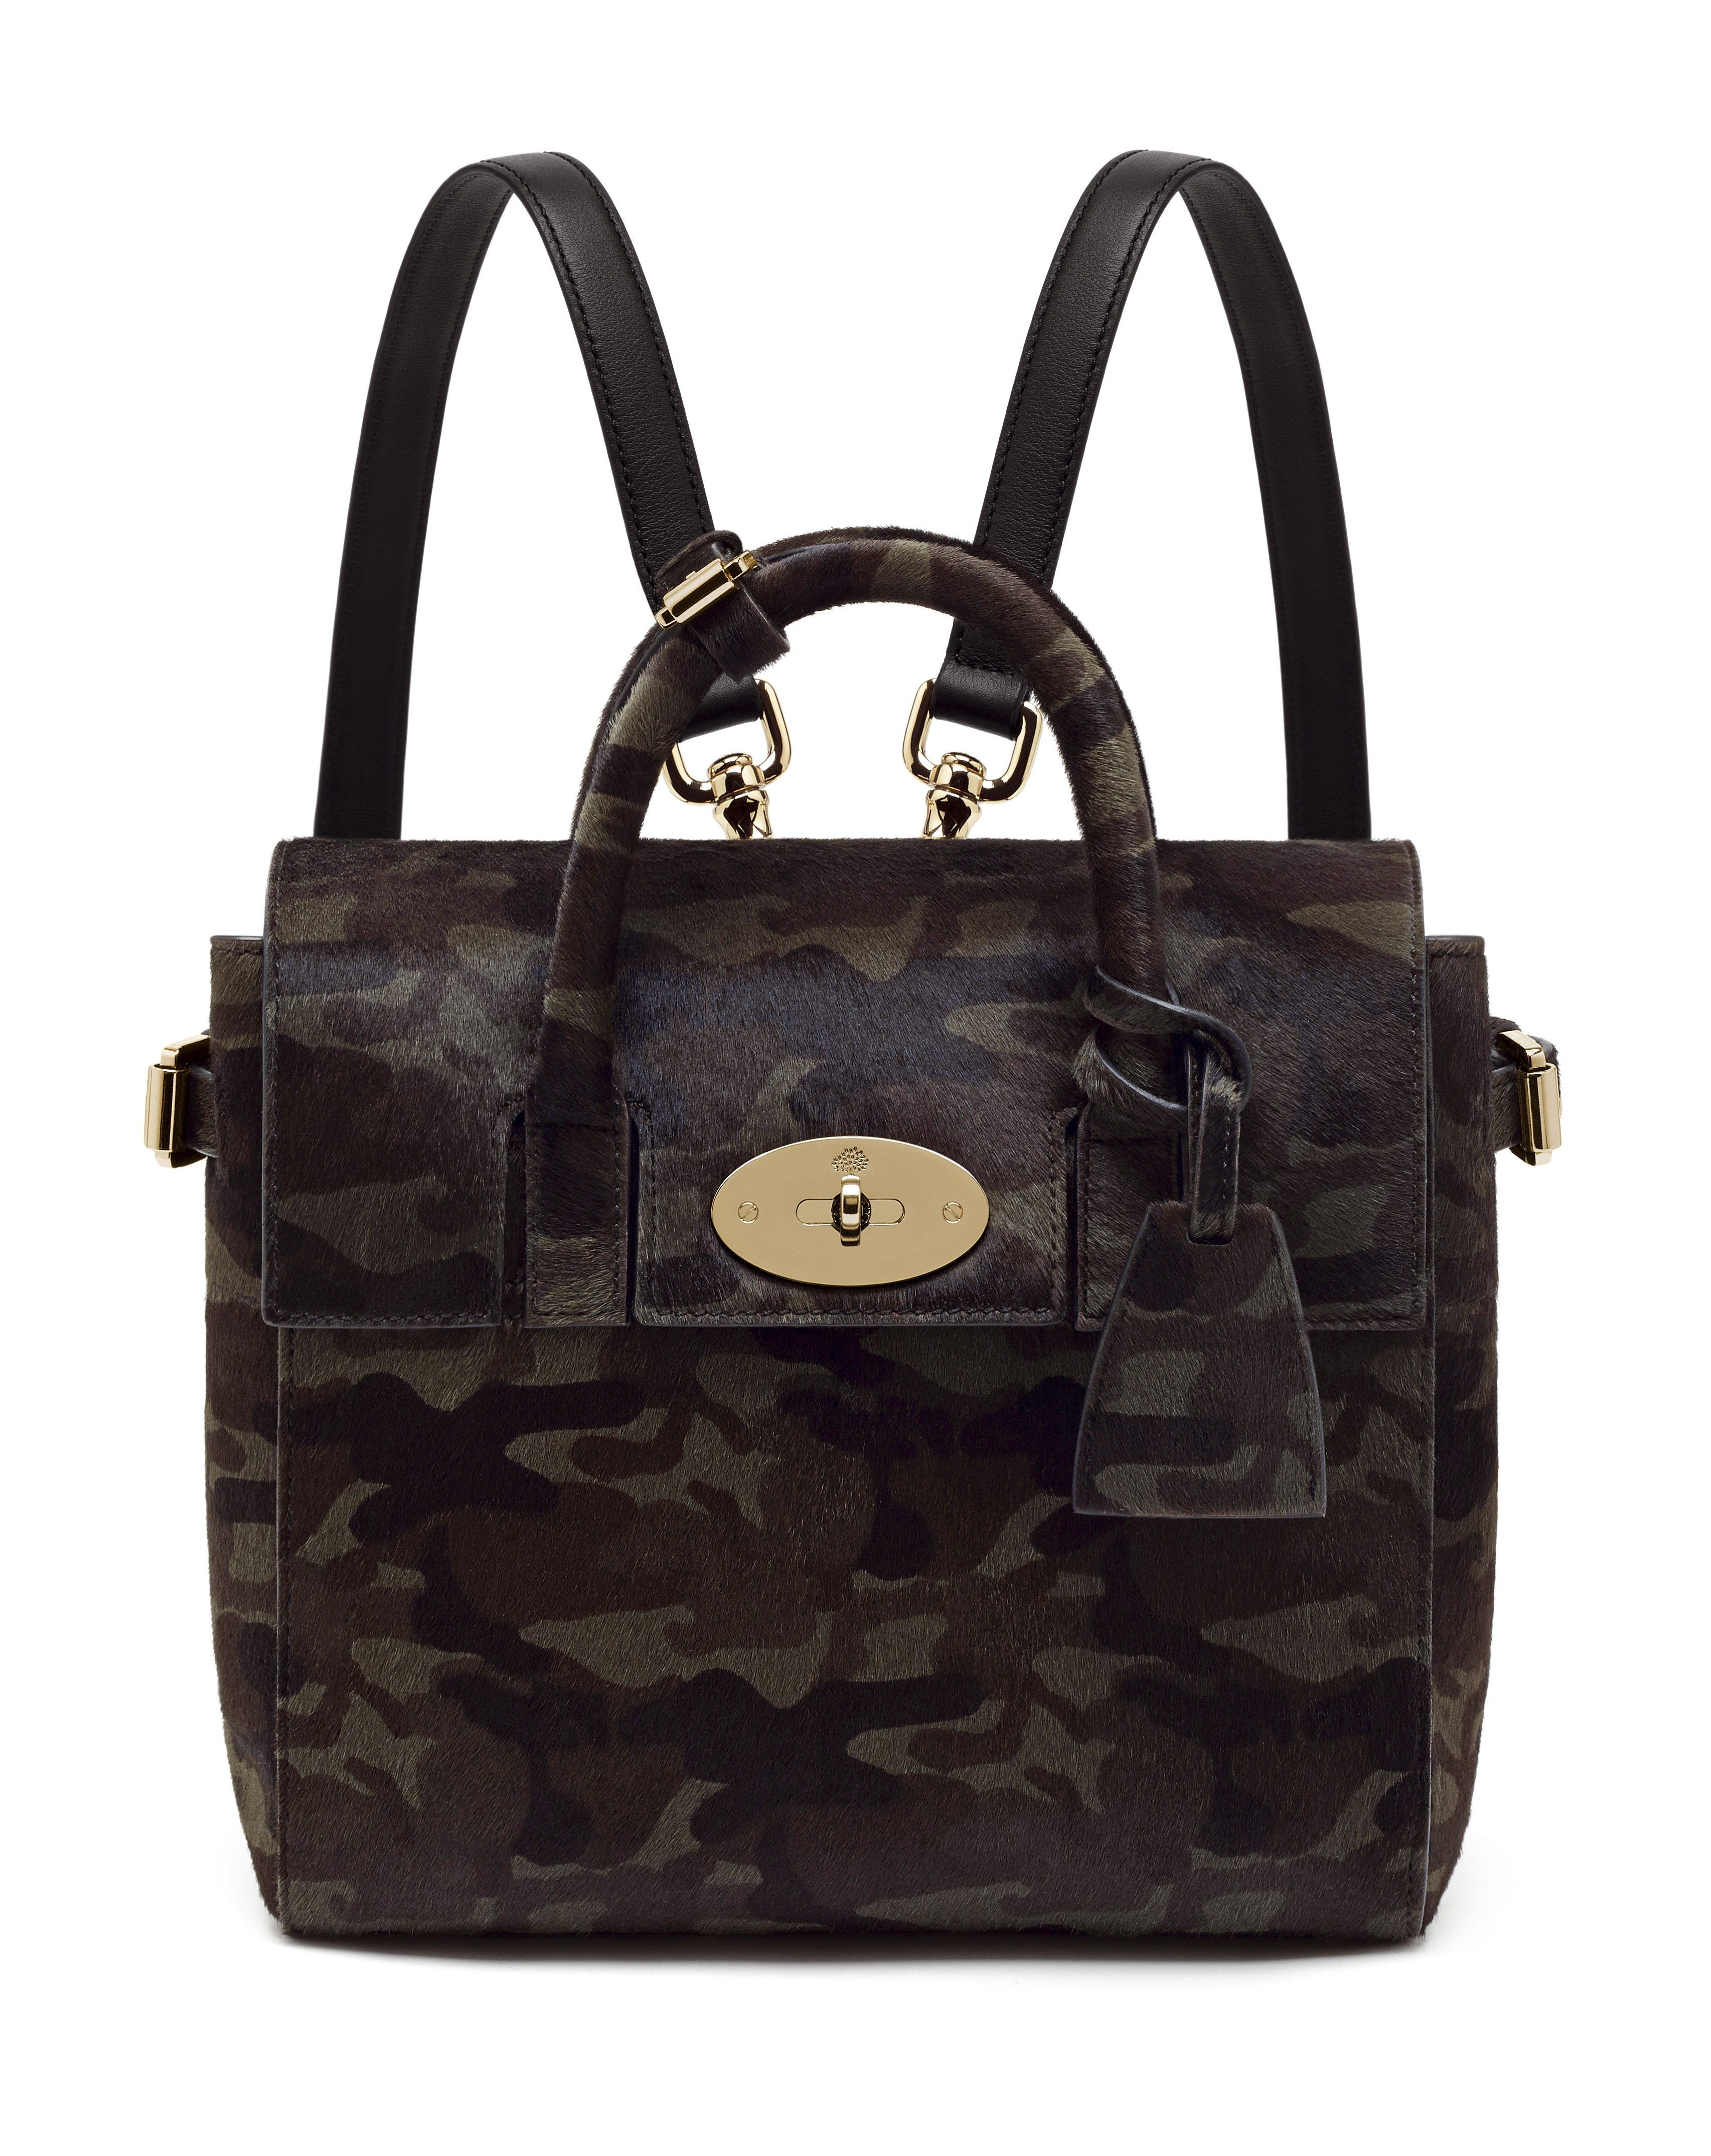 Mini Cara Delevingne Bag in Khaki Camo Haircalf